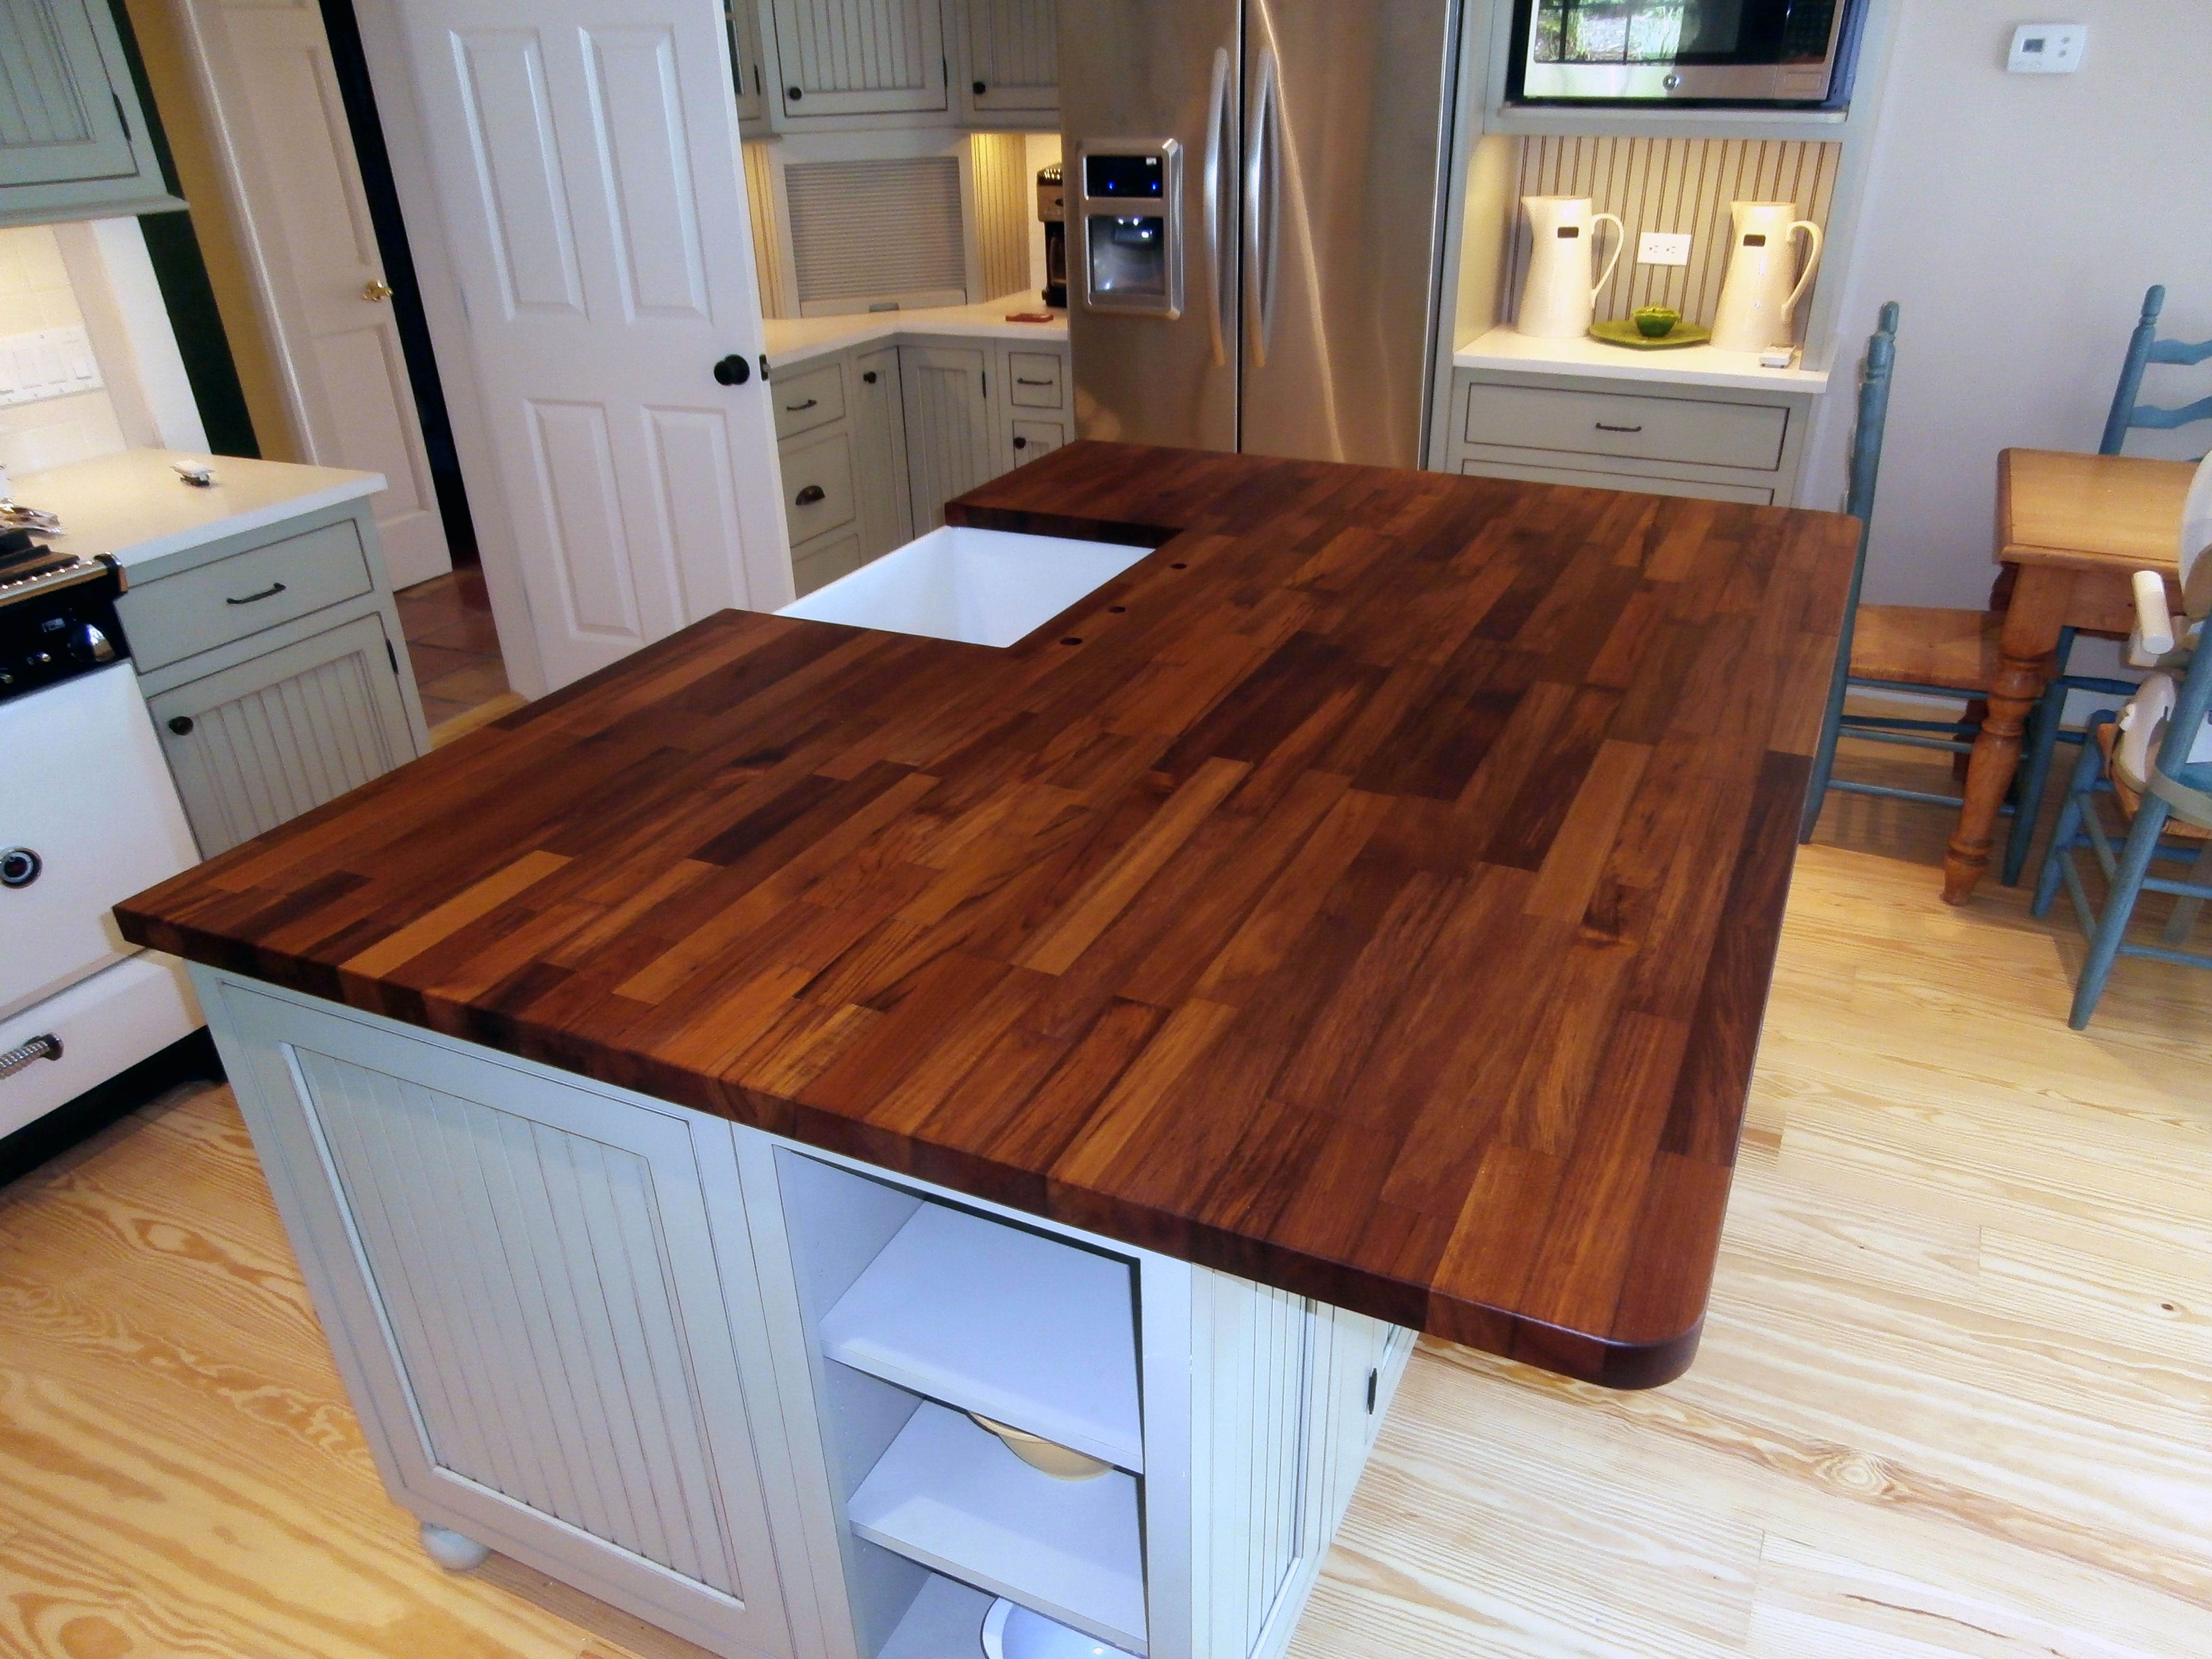 Teak Eco Pro kitchen island countertop This top was made for